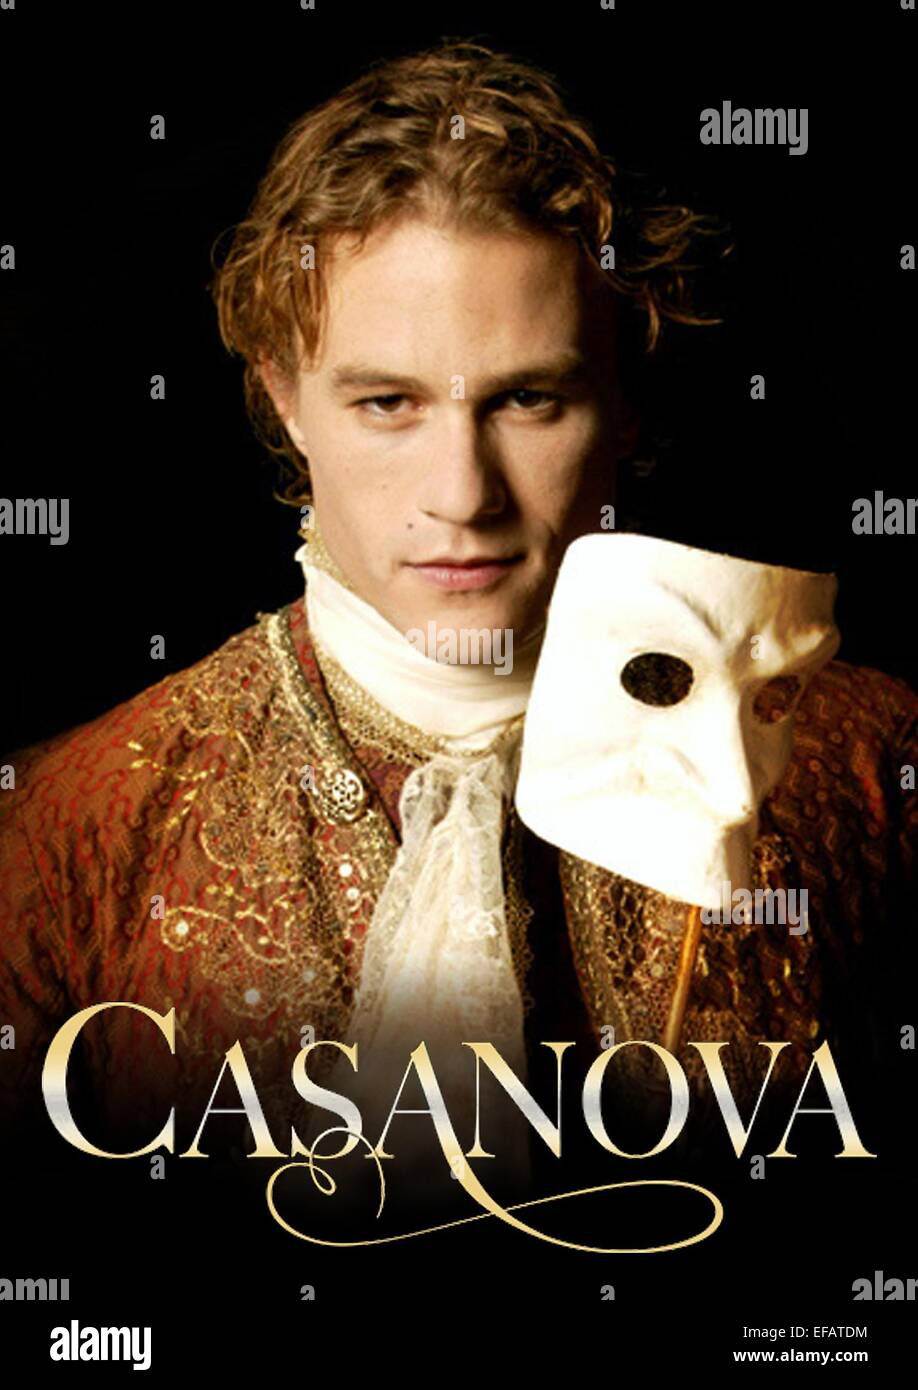 casanova movie heath ledger wwwpixsharkcom images